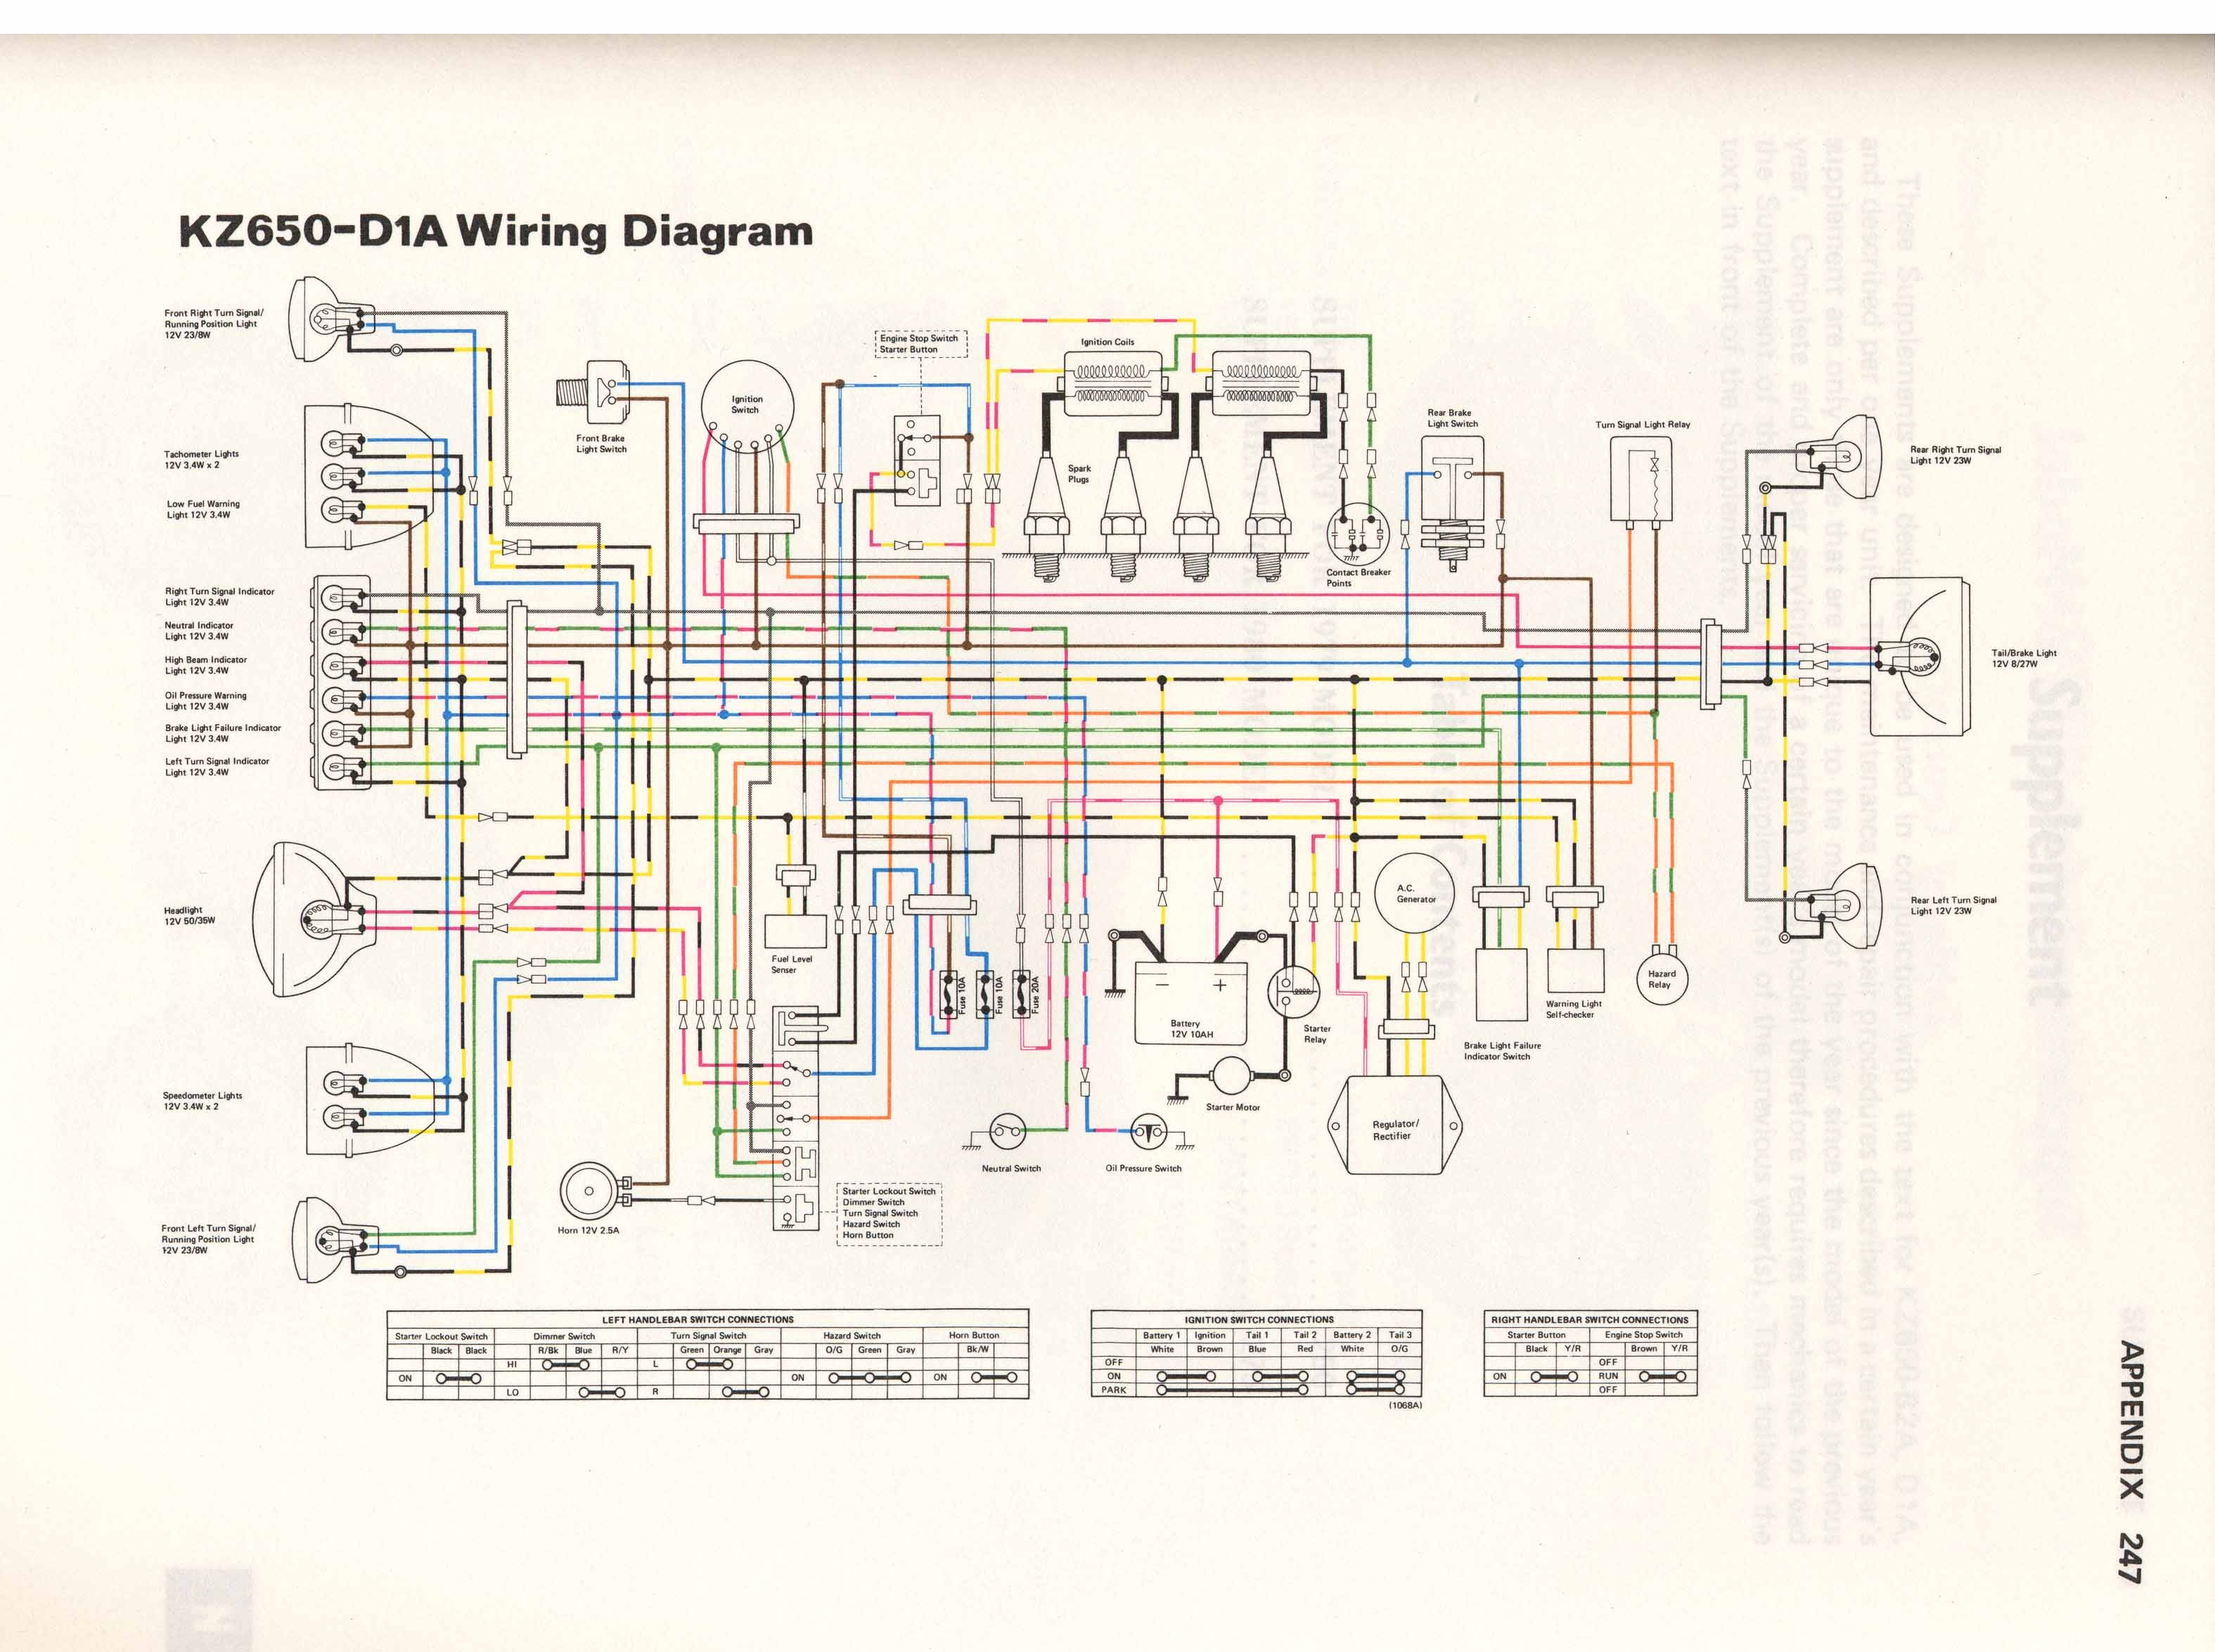 kz750 80 wiring diagram wiring diagram library u2022 rh wiringboxa today 1983 kawasaki gpz 750 wiring diagram 1984 kawasaki gpz 750 wiring diagram